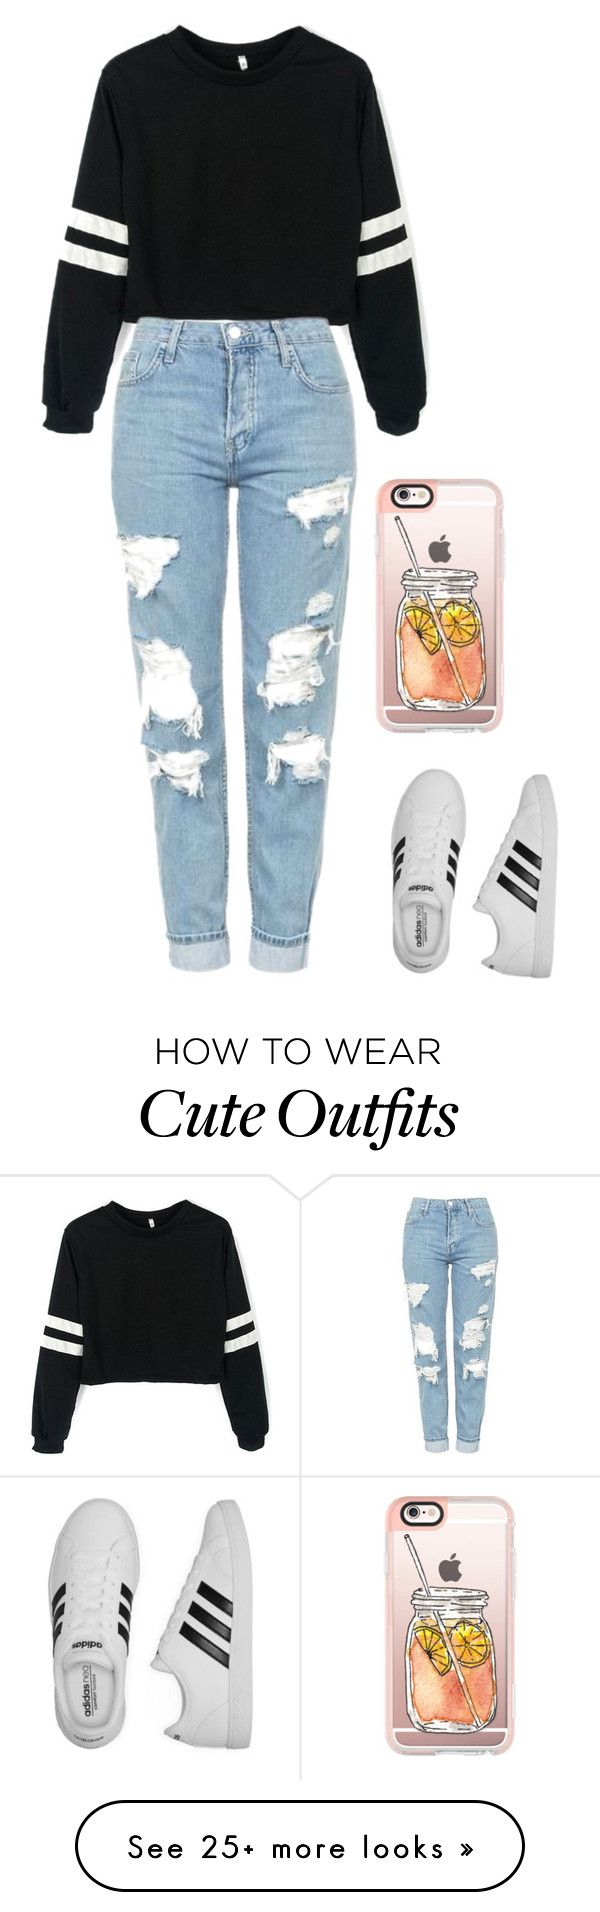 """Cute, casual, and comfortable outfit for every day."" by madelinepiovesan on Polyvore featuring Topshop, adidas and Casetify"